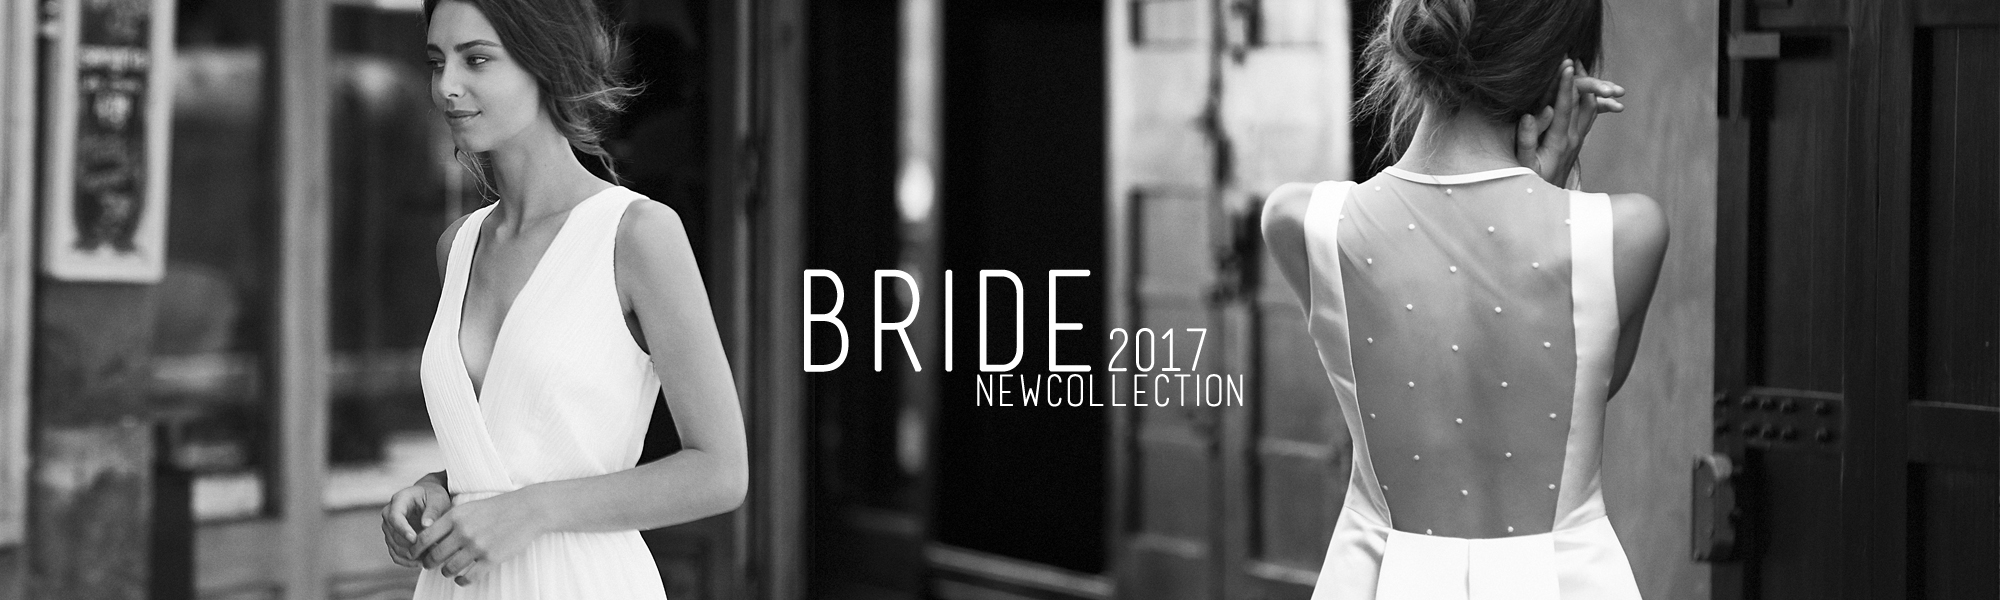 New Collection Bride 2017